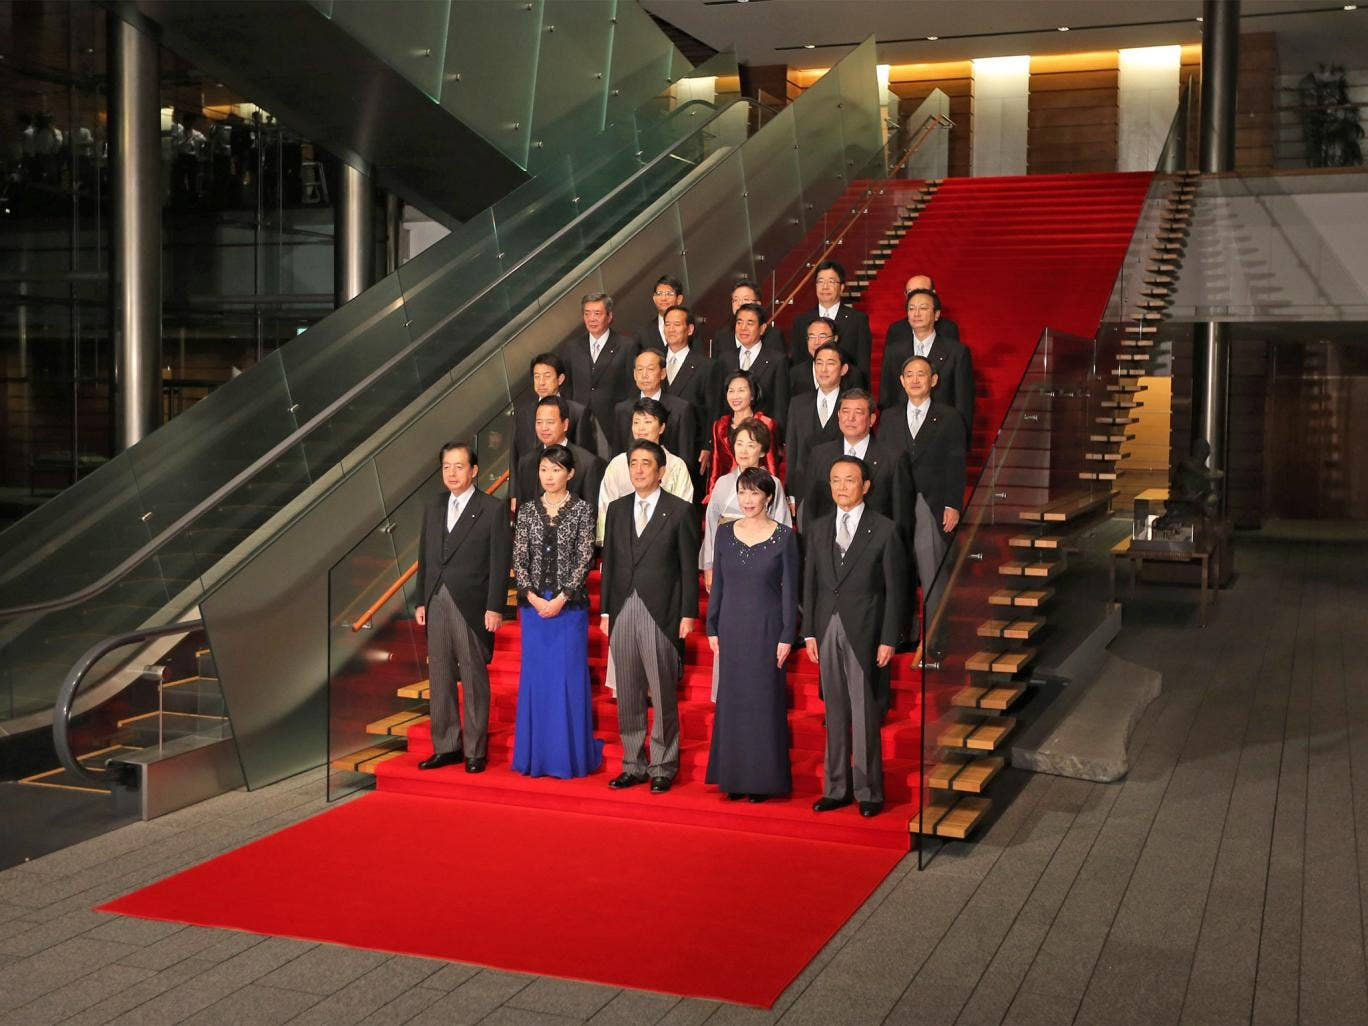 Prime Minister Shinzo Abe (centre, front) poses with members of his new cabinet, which includes five women, following their first meeting at his official residence in Tokyo